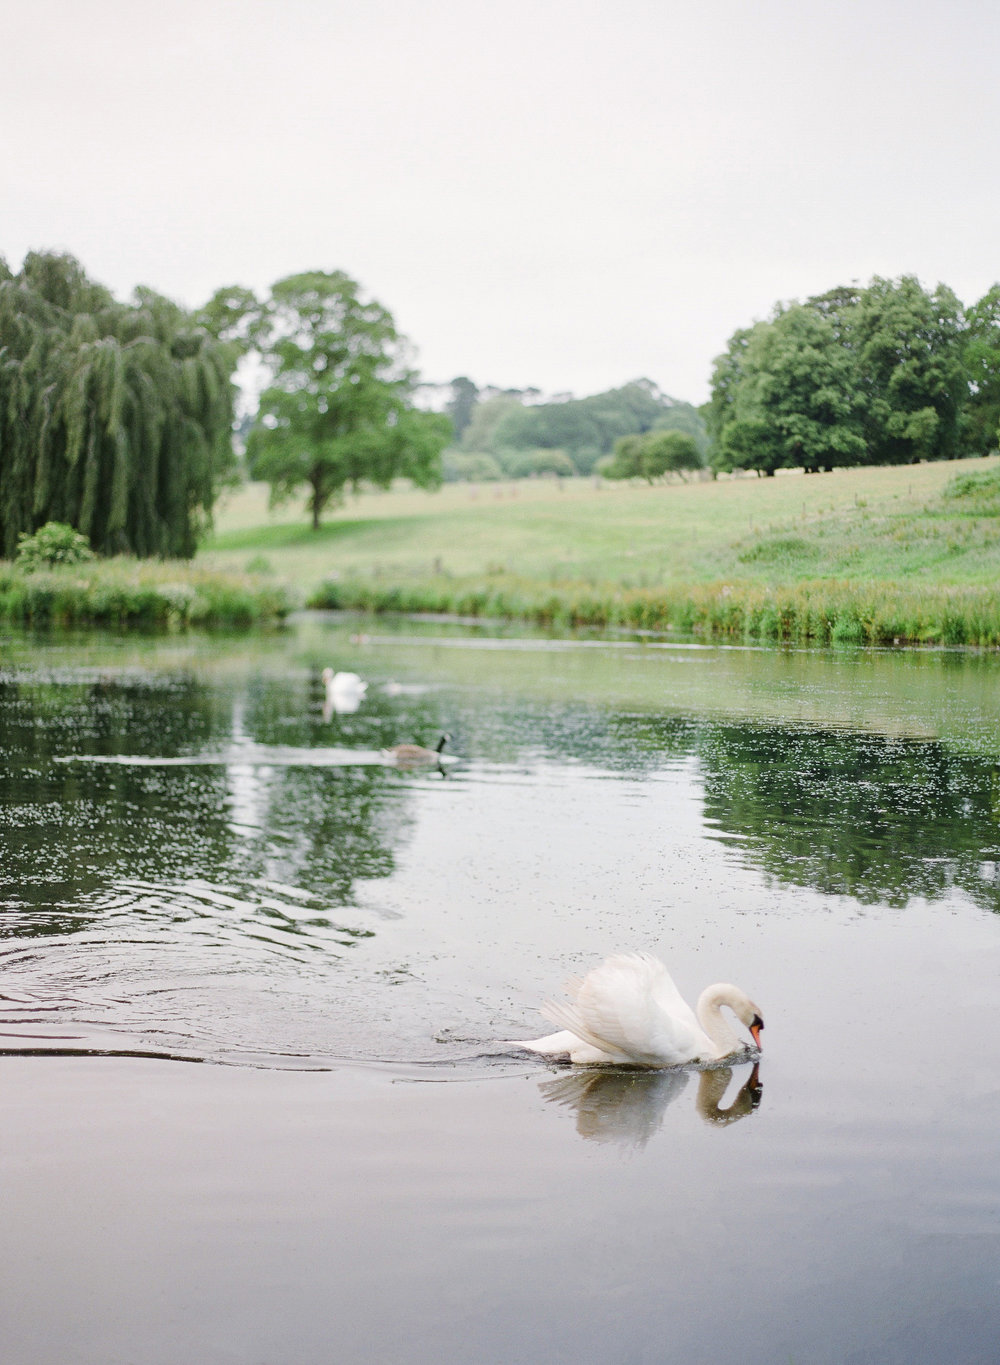 Swans on the lake at Boconnoc